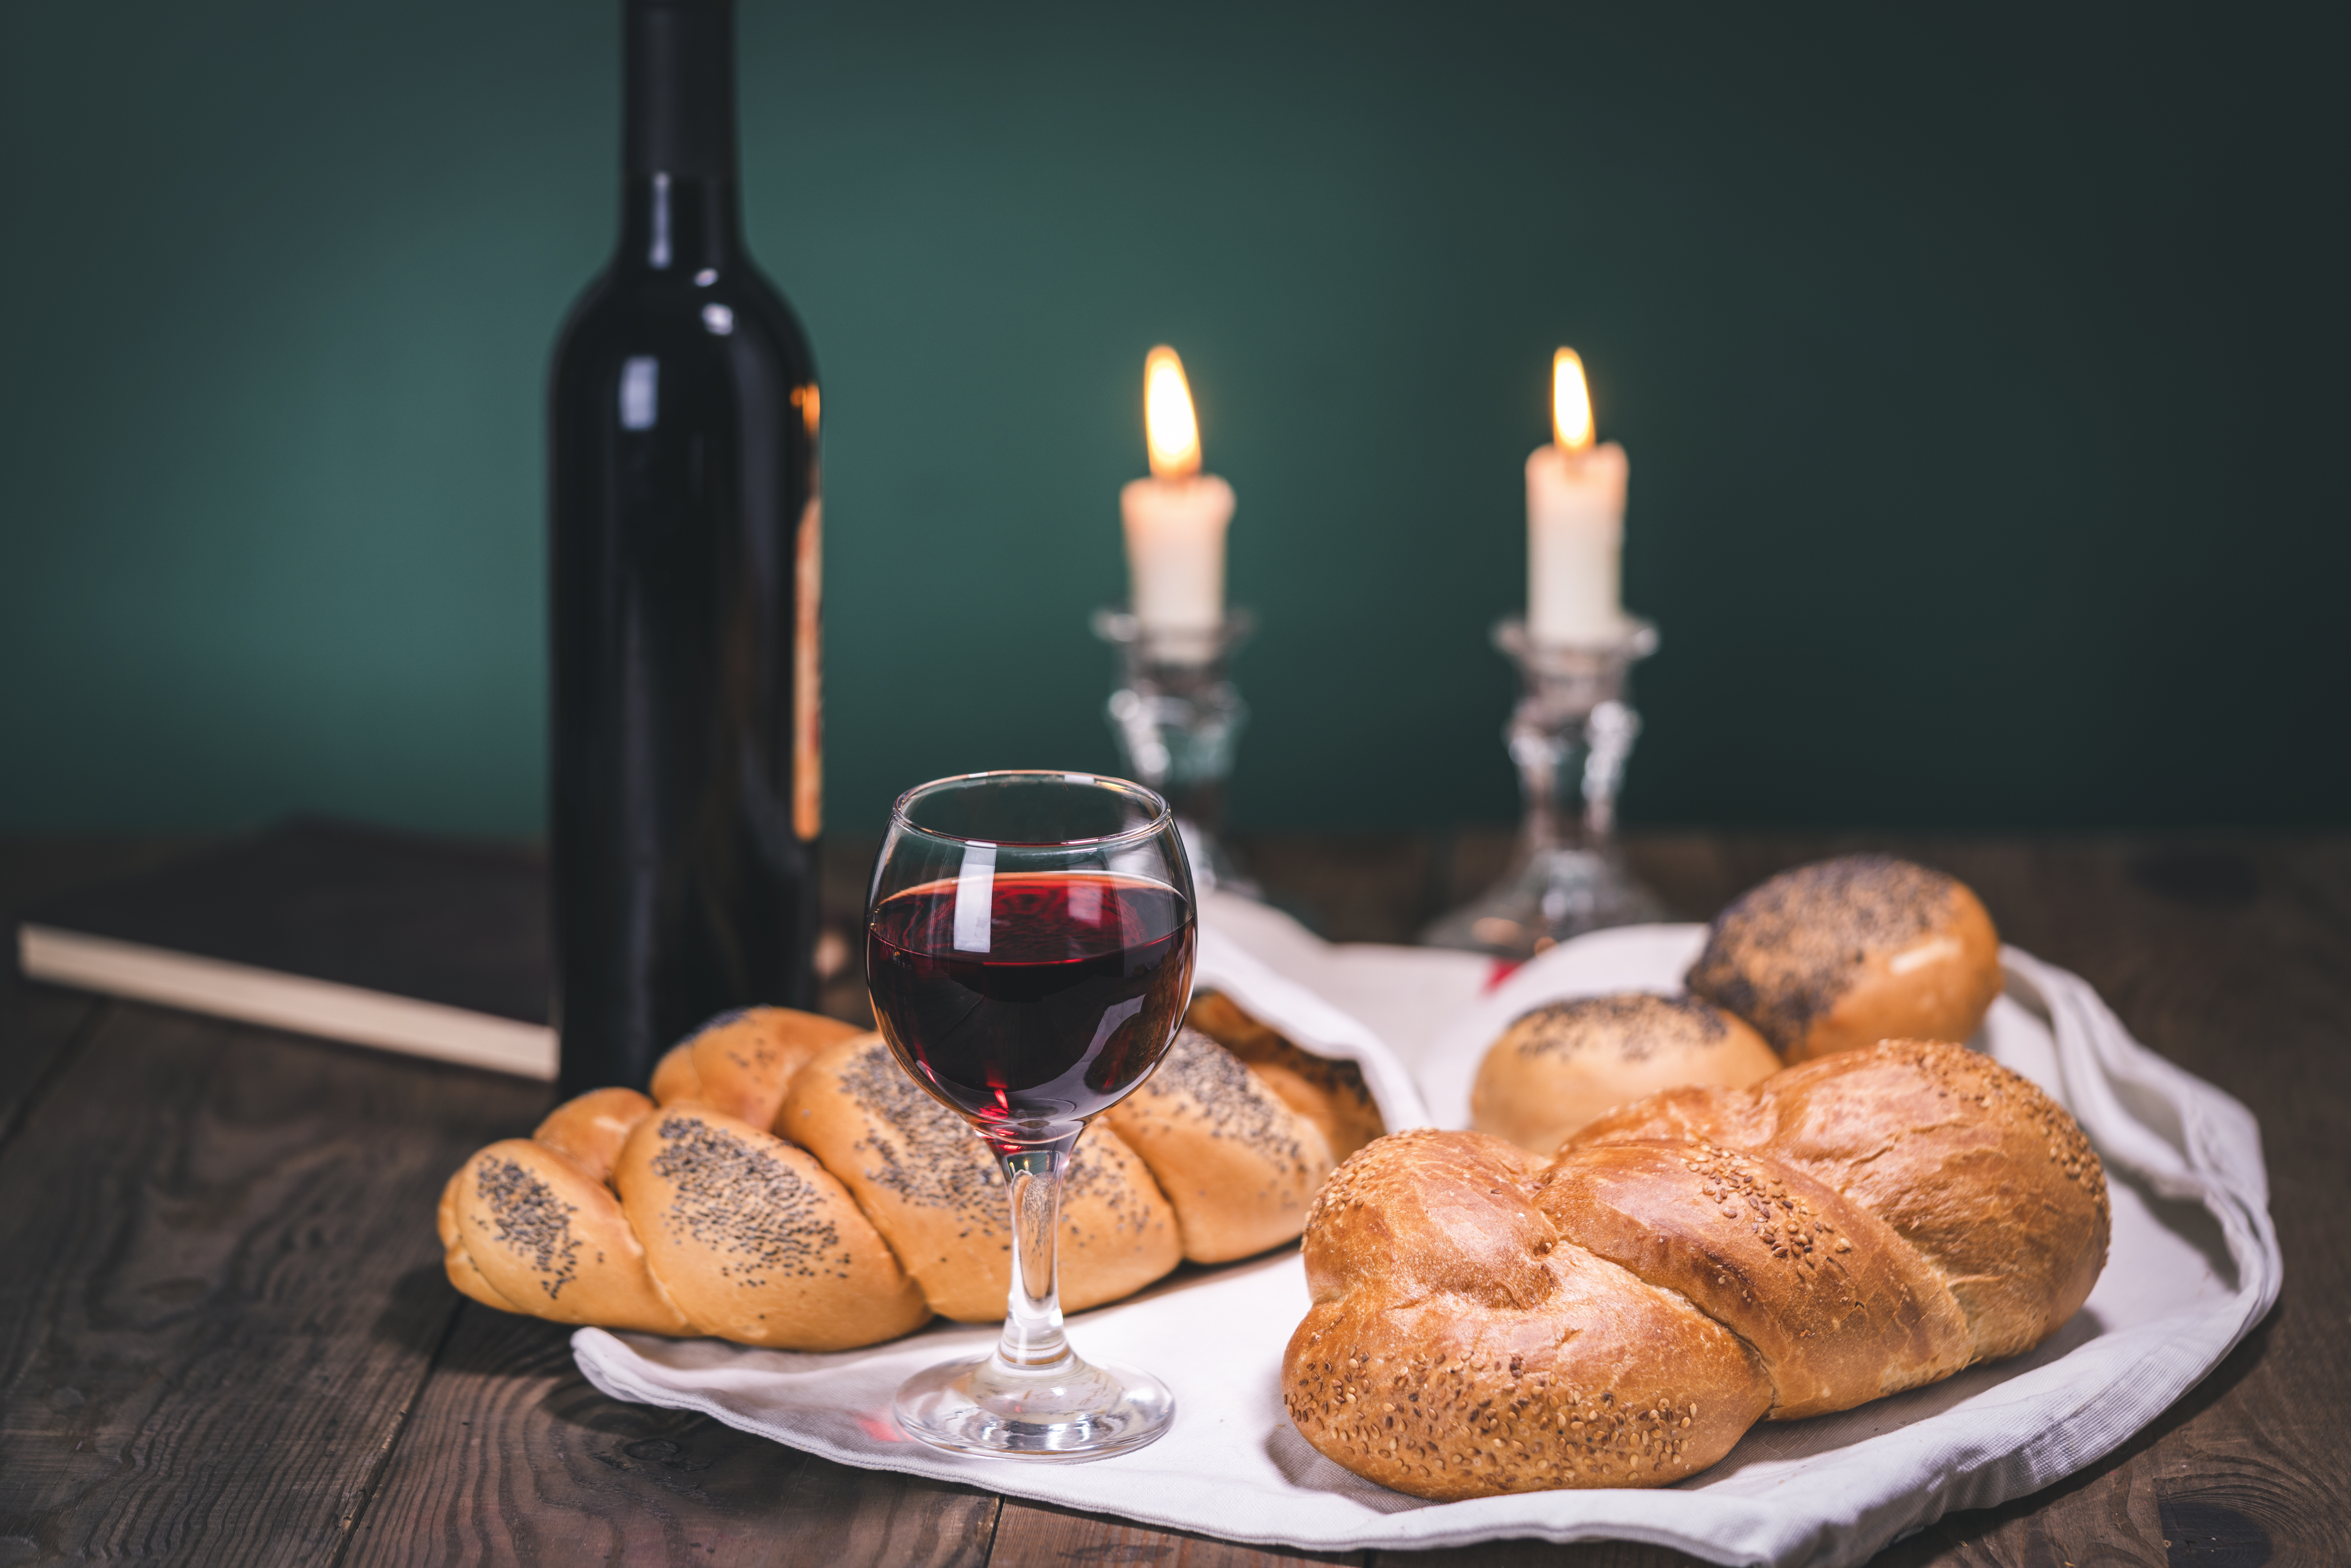 Kosher wine is made similarly to most non-kosher wine, but it's important who makes the wine, when and how. Forwine to be kosher, it should be made by religious Jewish wine makers who follow certain practices at their vineyards.